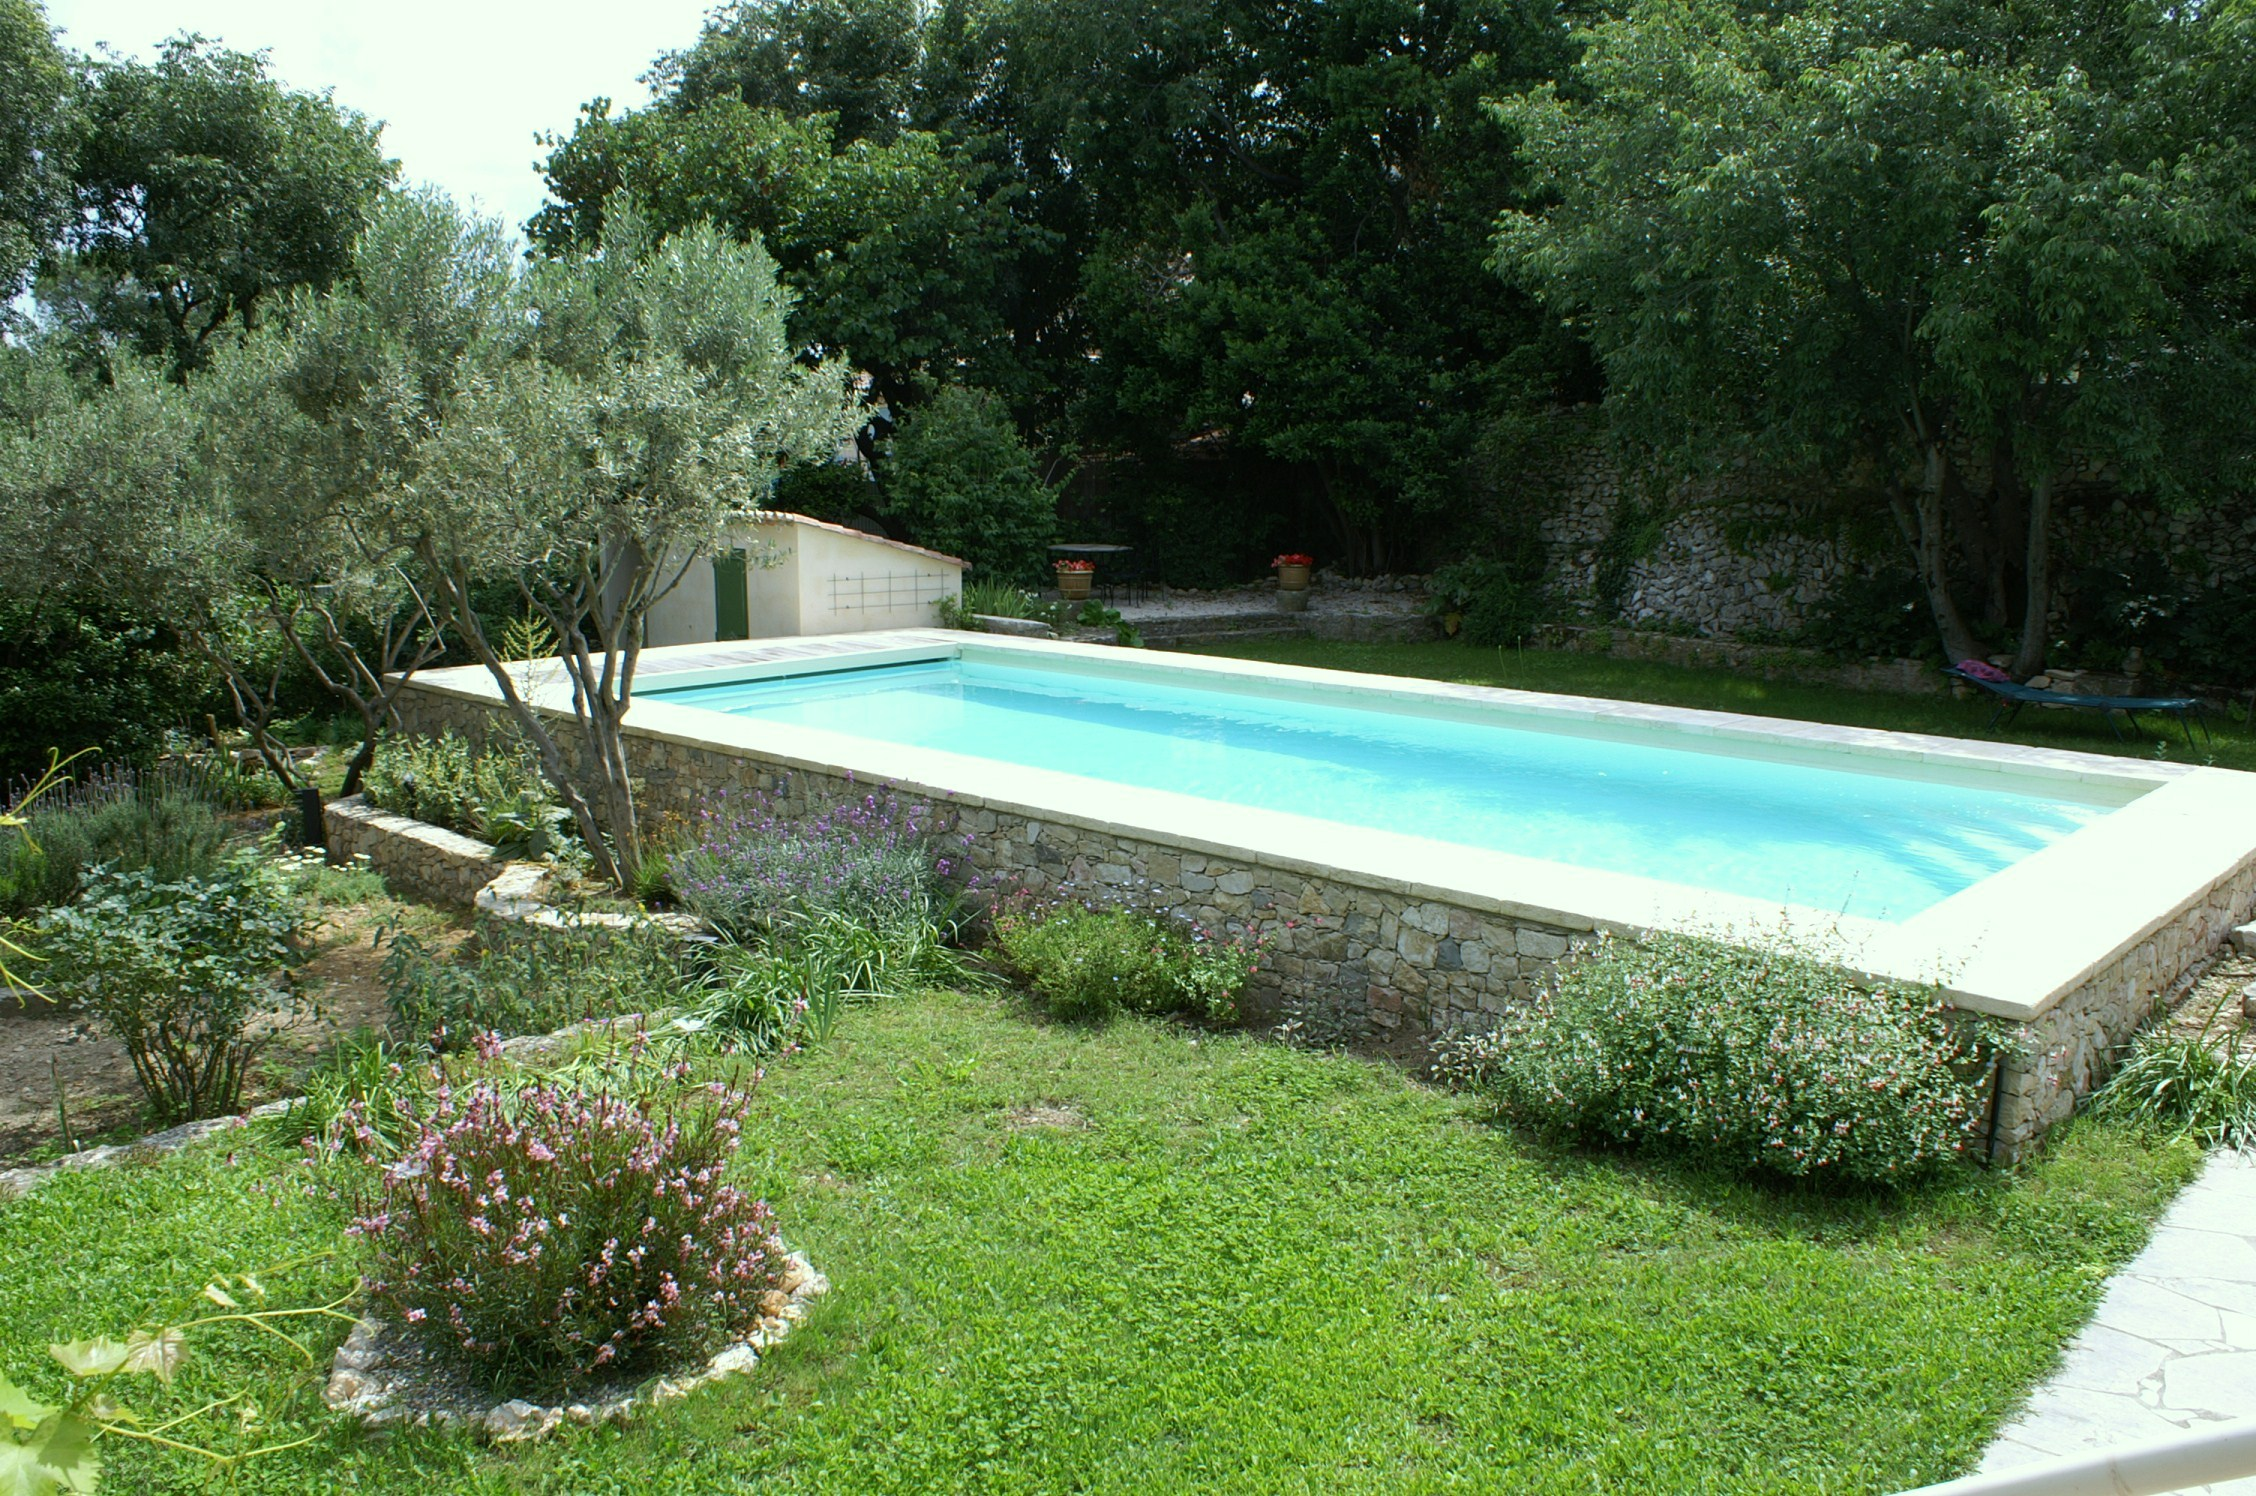 Amnagement piscine hors sol lovely amenagement autour d for Photo d amenagement piscine